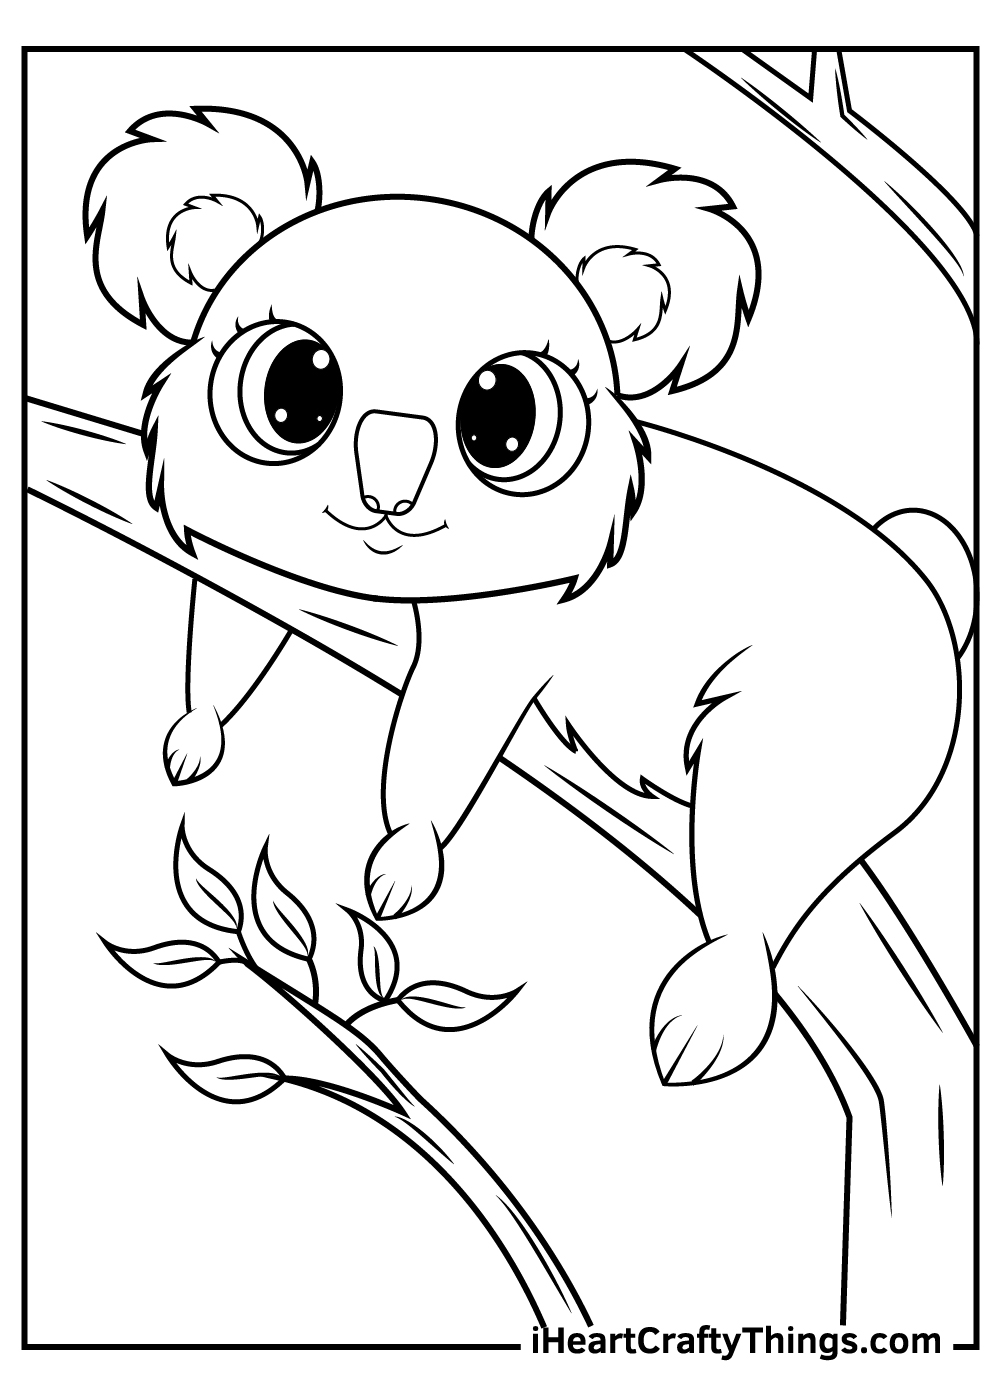 adorable koalas coloring pages for kids